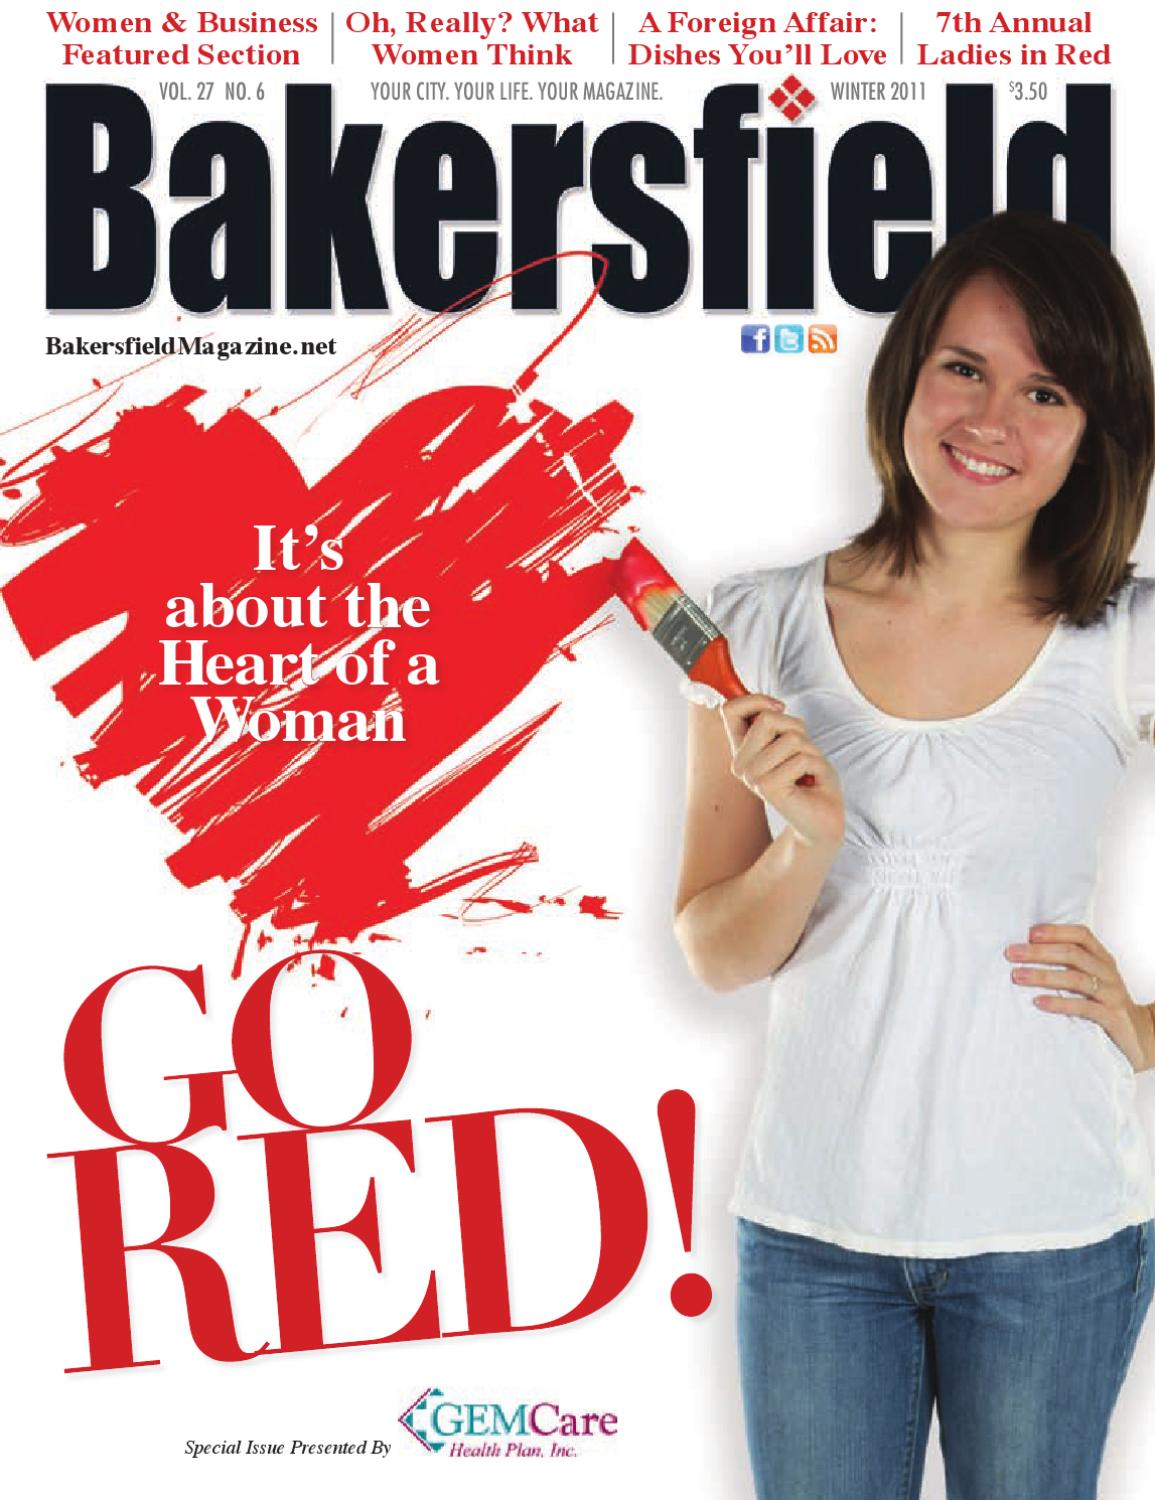 Bakersfield Magazine • 27-6 • Go Red! Women & Business by ...